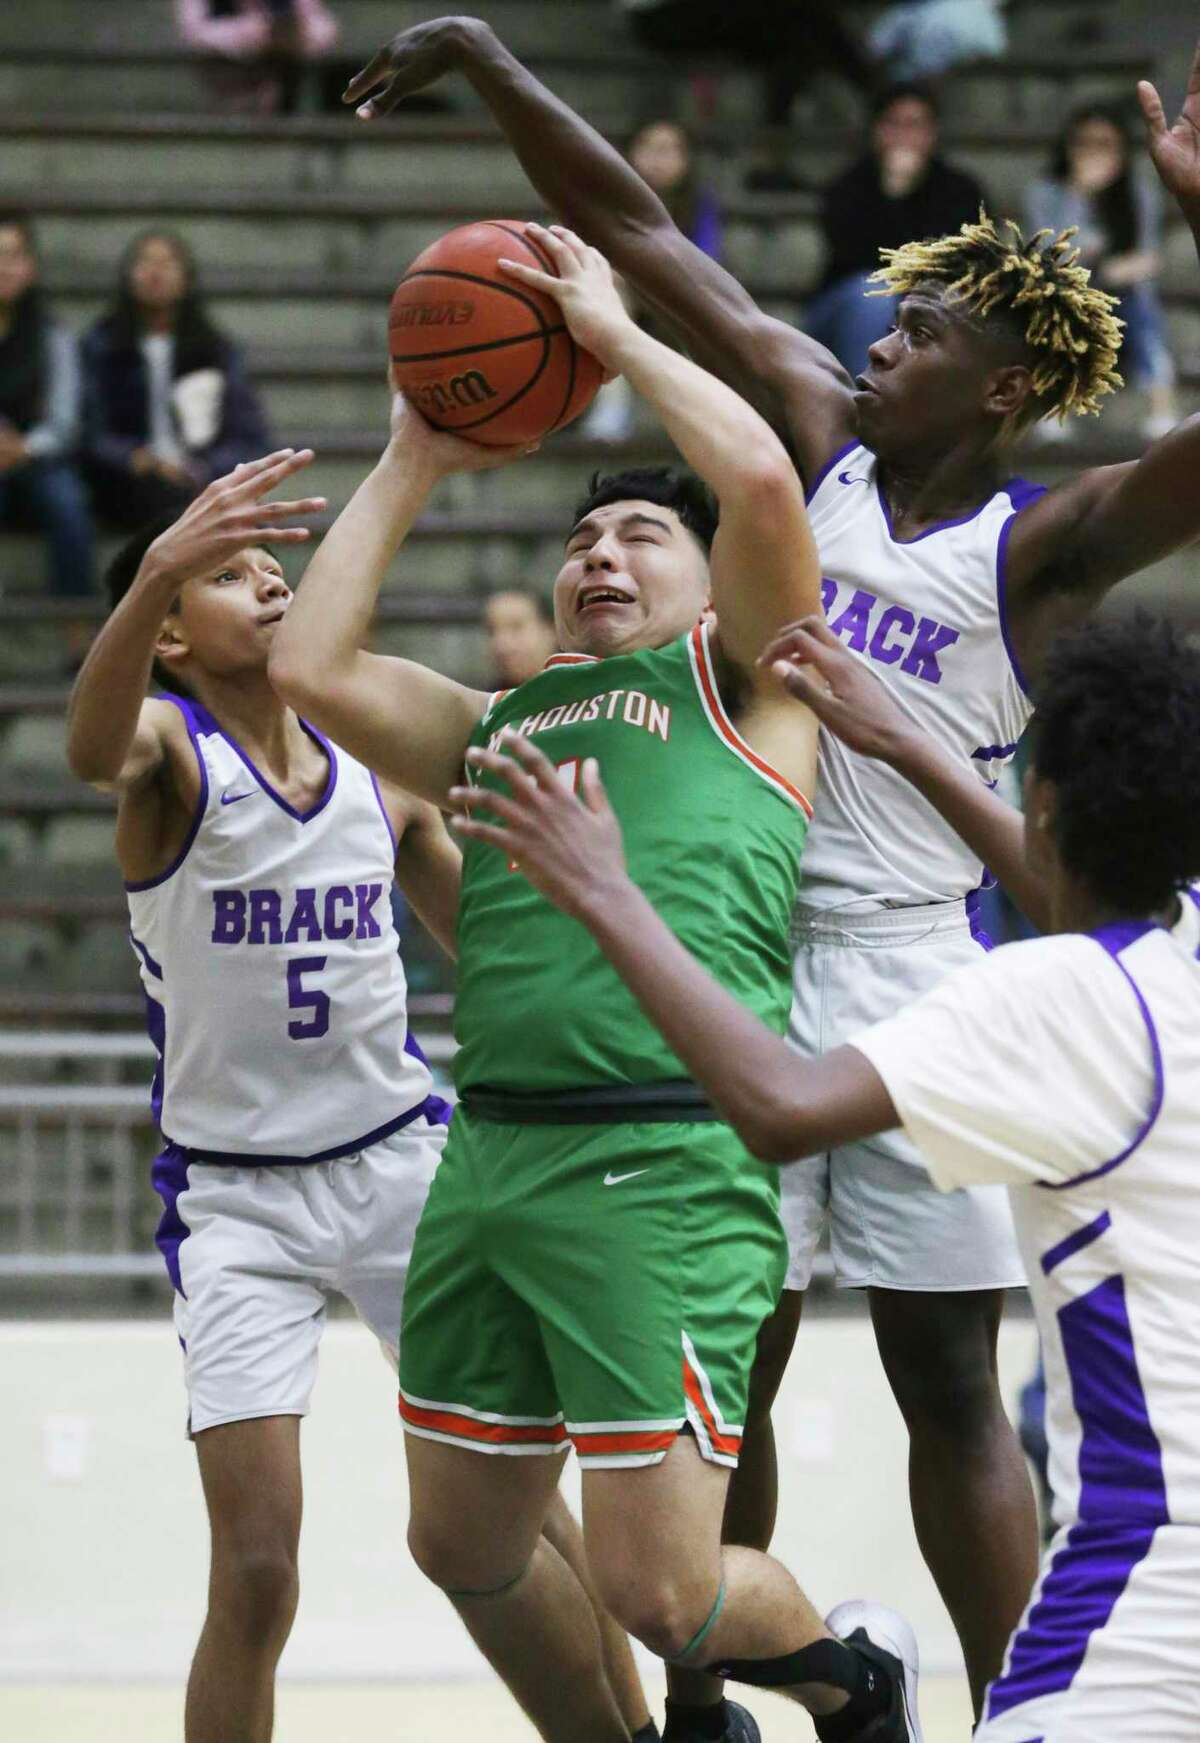 Jesus Alonzo gets stopped under the basket by Eagle defenders Isaiah Perales, 5, and Kalvin Nance as Sam Houston plays Brackenridge in boys basketball at the Alamo Convocation Center on Jan.21, 2020.